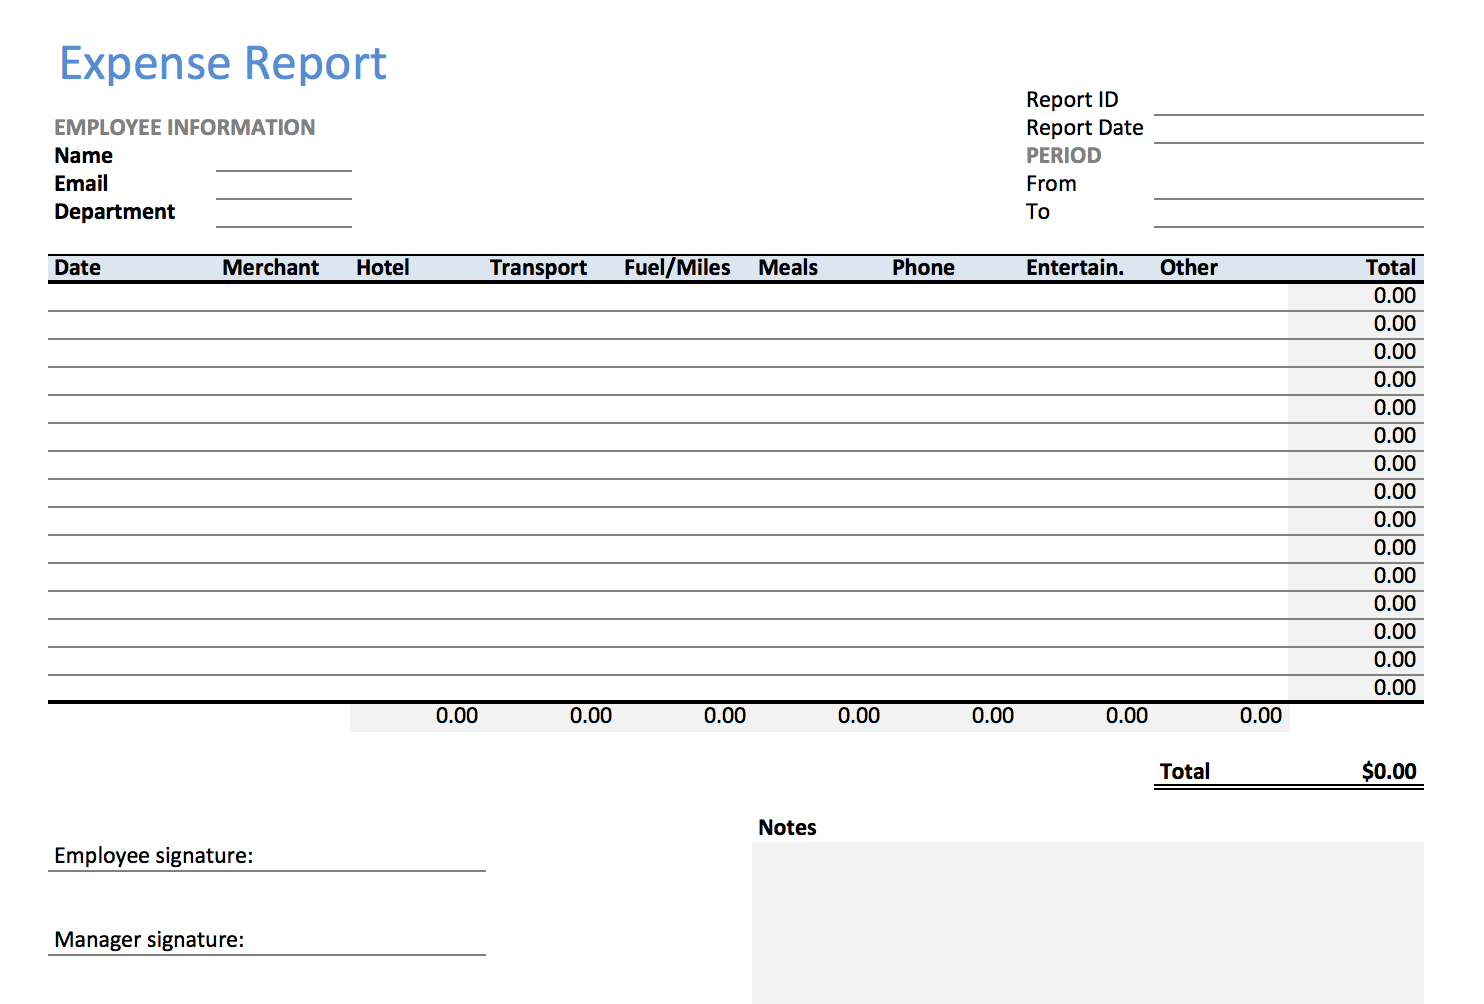 expense report categories